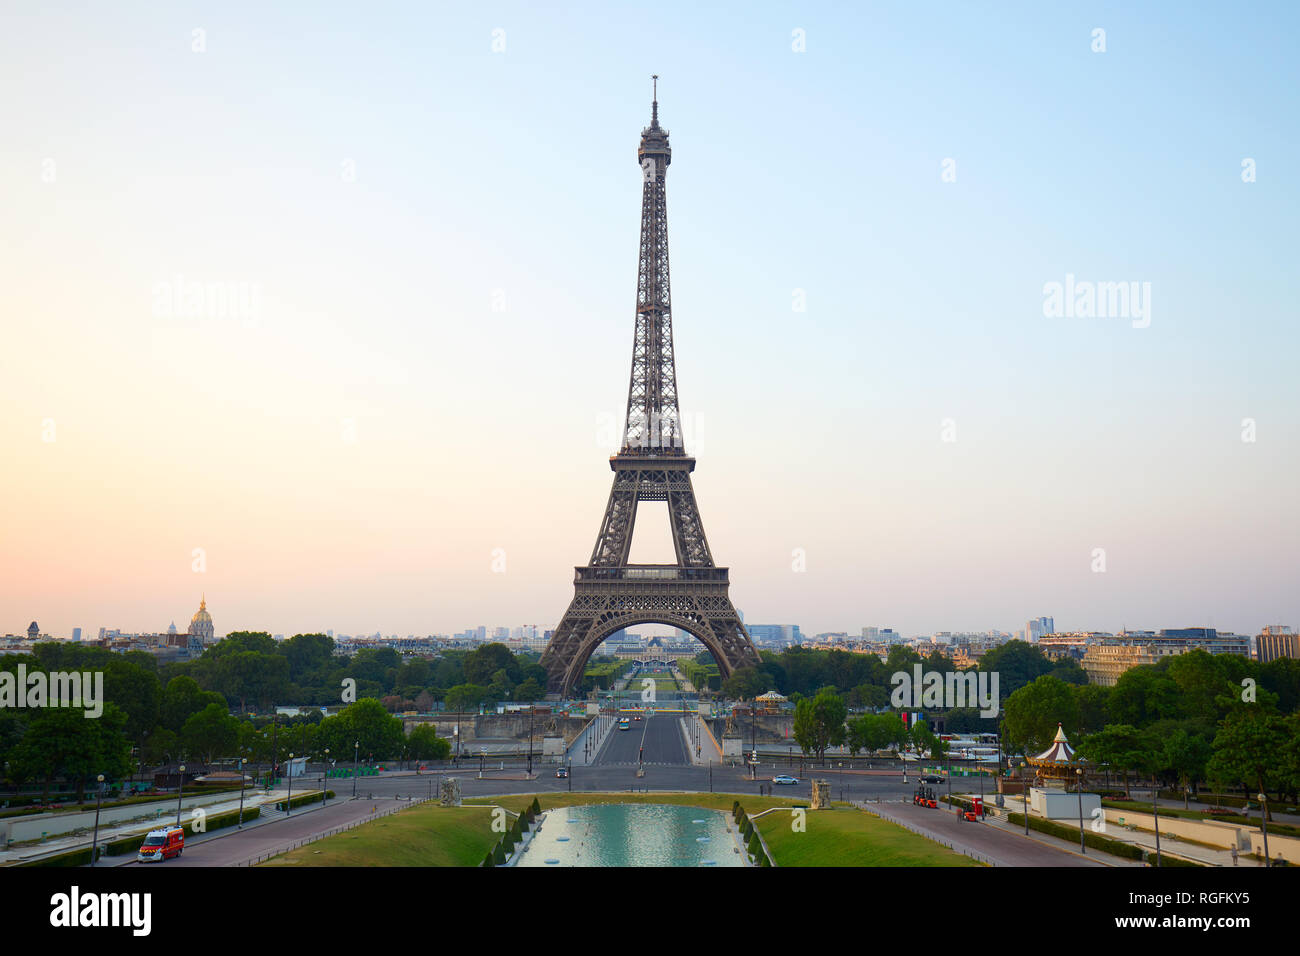 Eiffel tower, clear summer morning from Trocadero in Paris, France - Stock Image